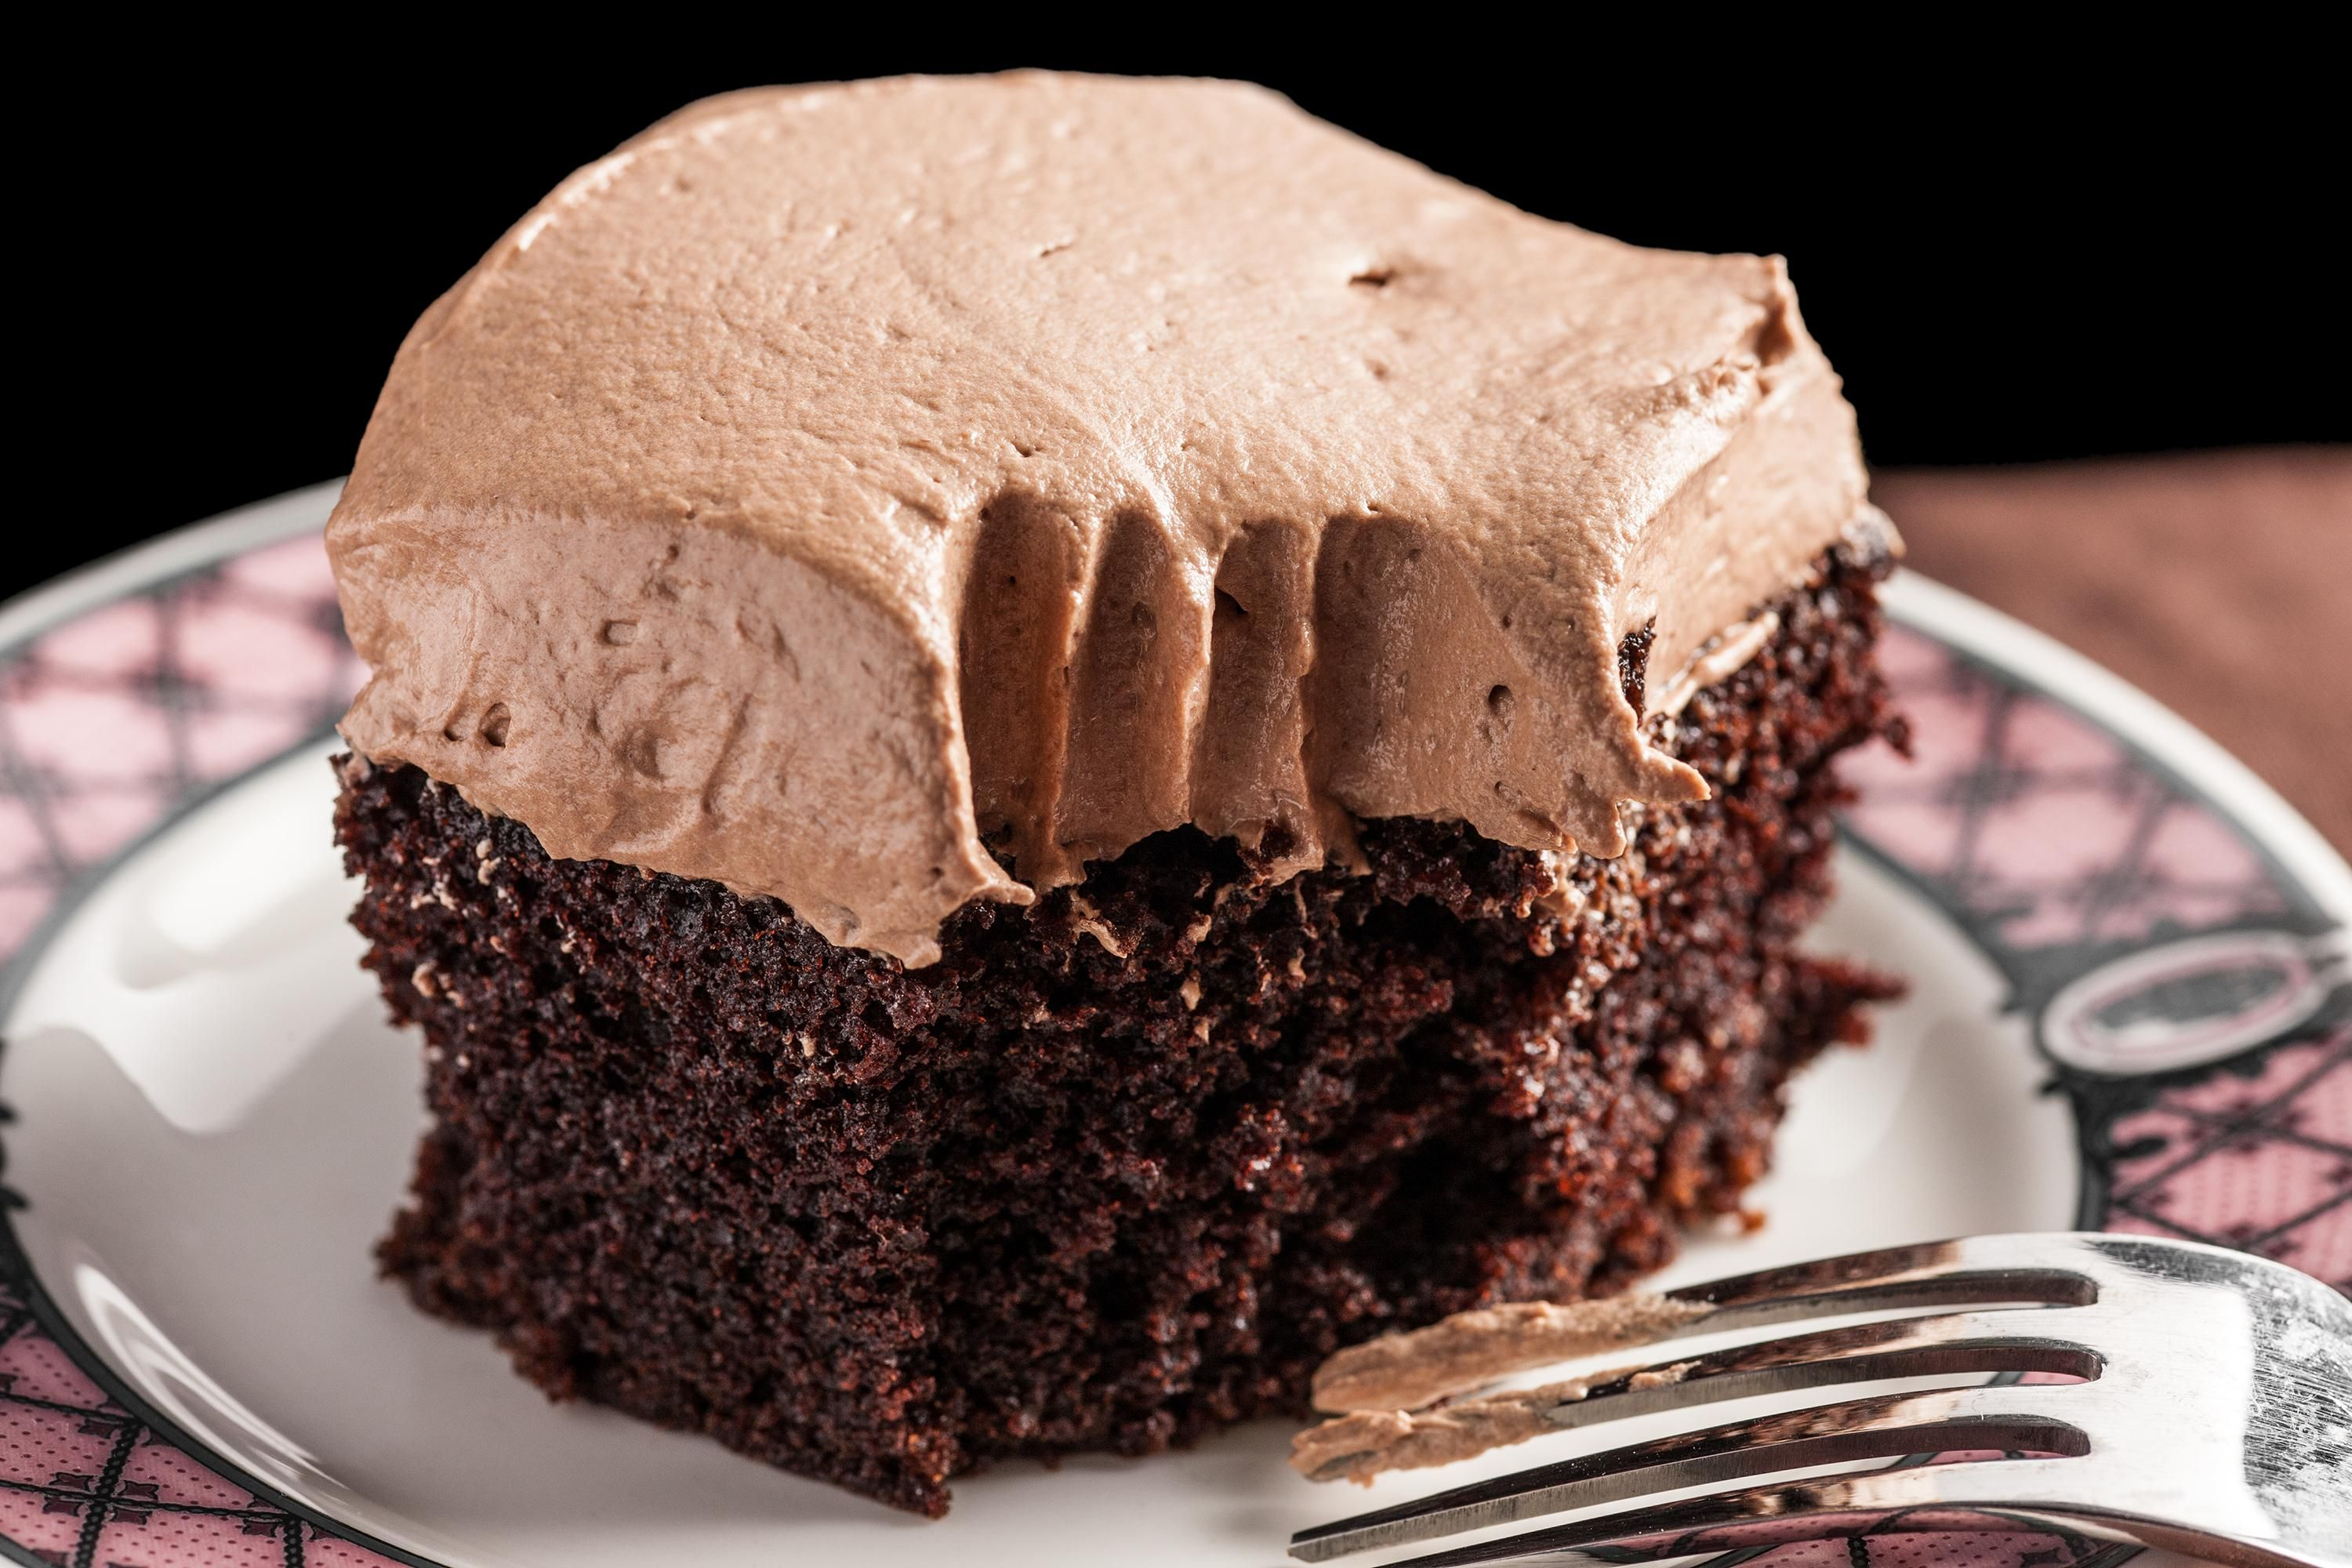 Easy Chocolate Sheet Cake With Mocha Ercream Frosting Recipe And